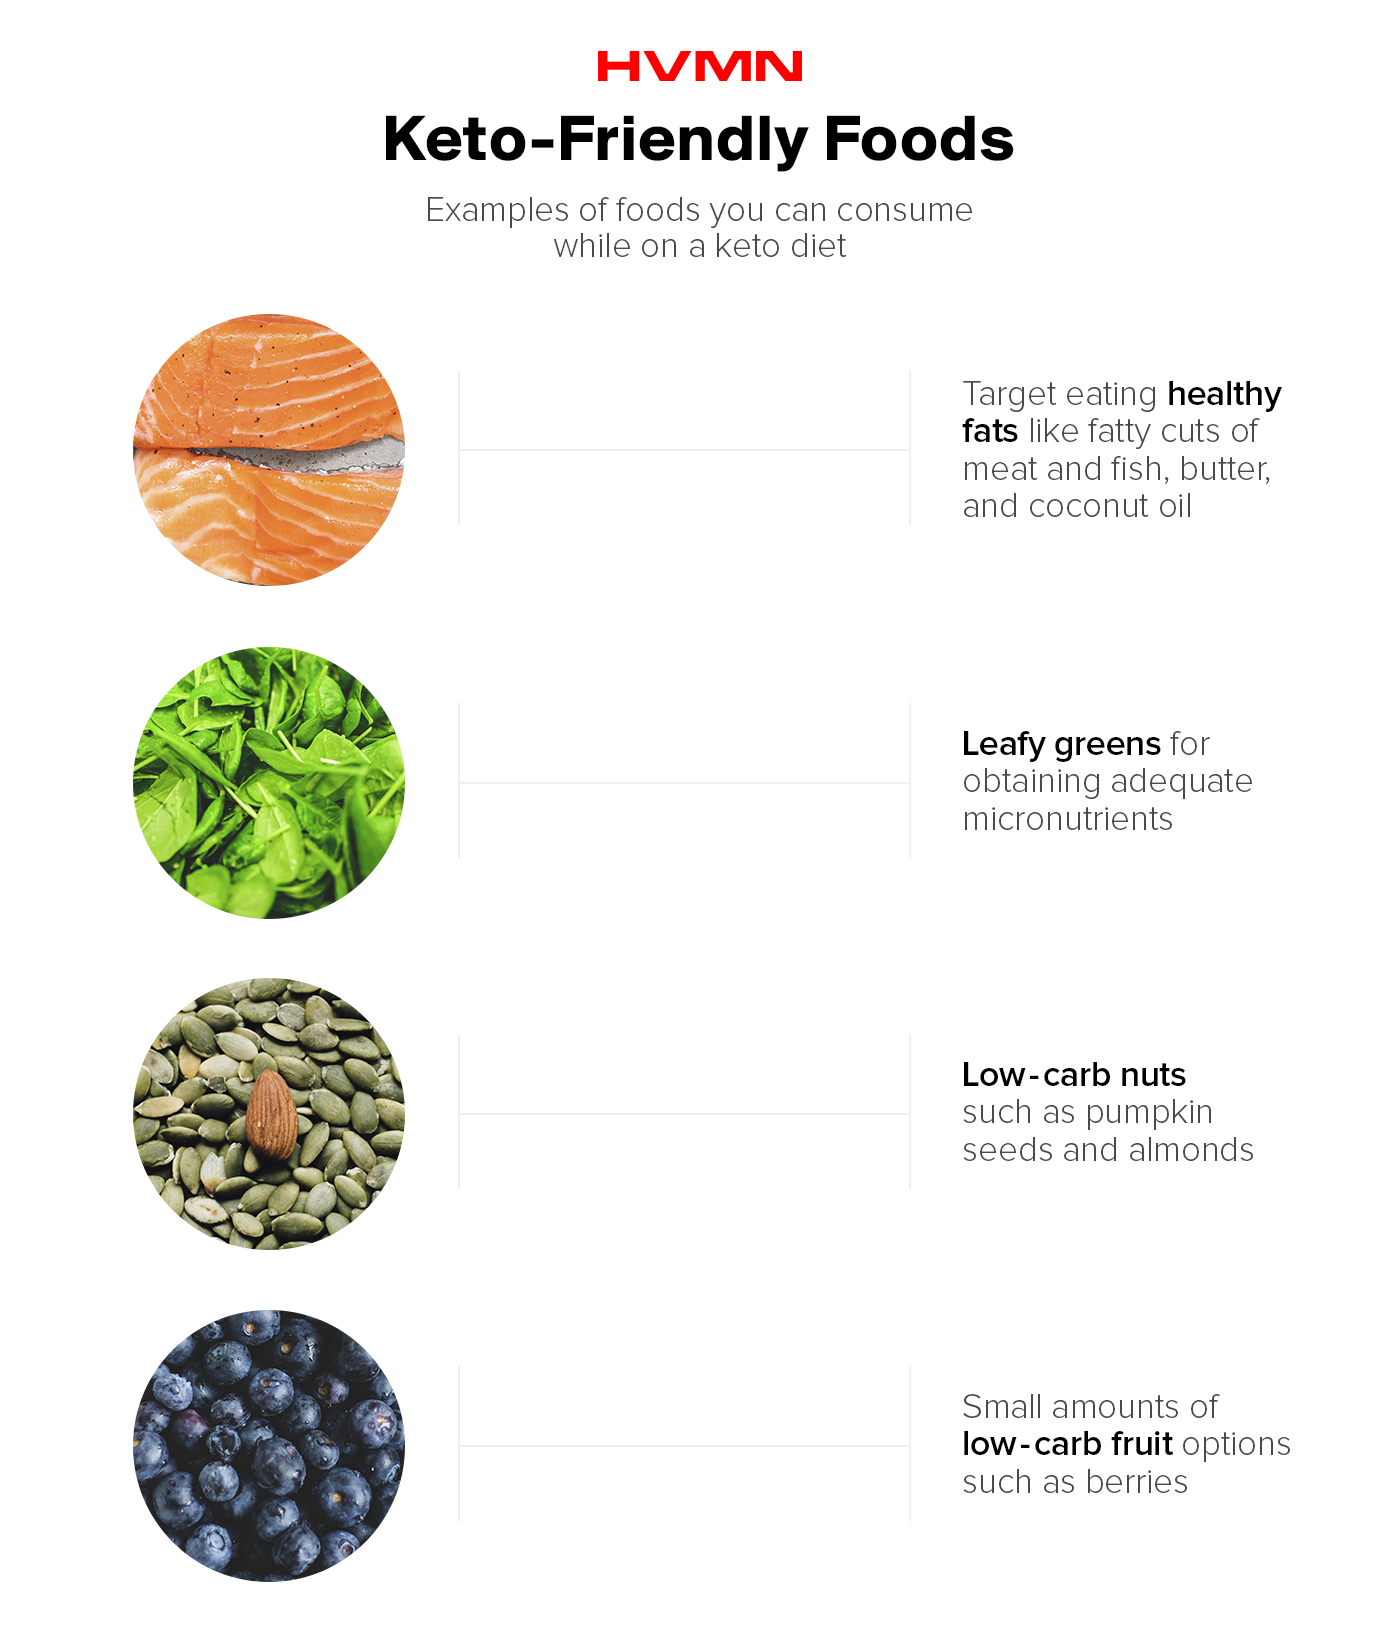 Images of salmon, arugula, pumpkin seeds and blueberries, which are all keto-friendly foods